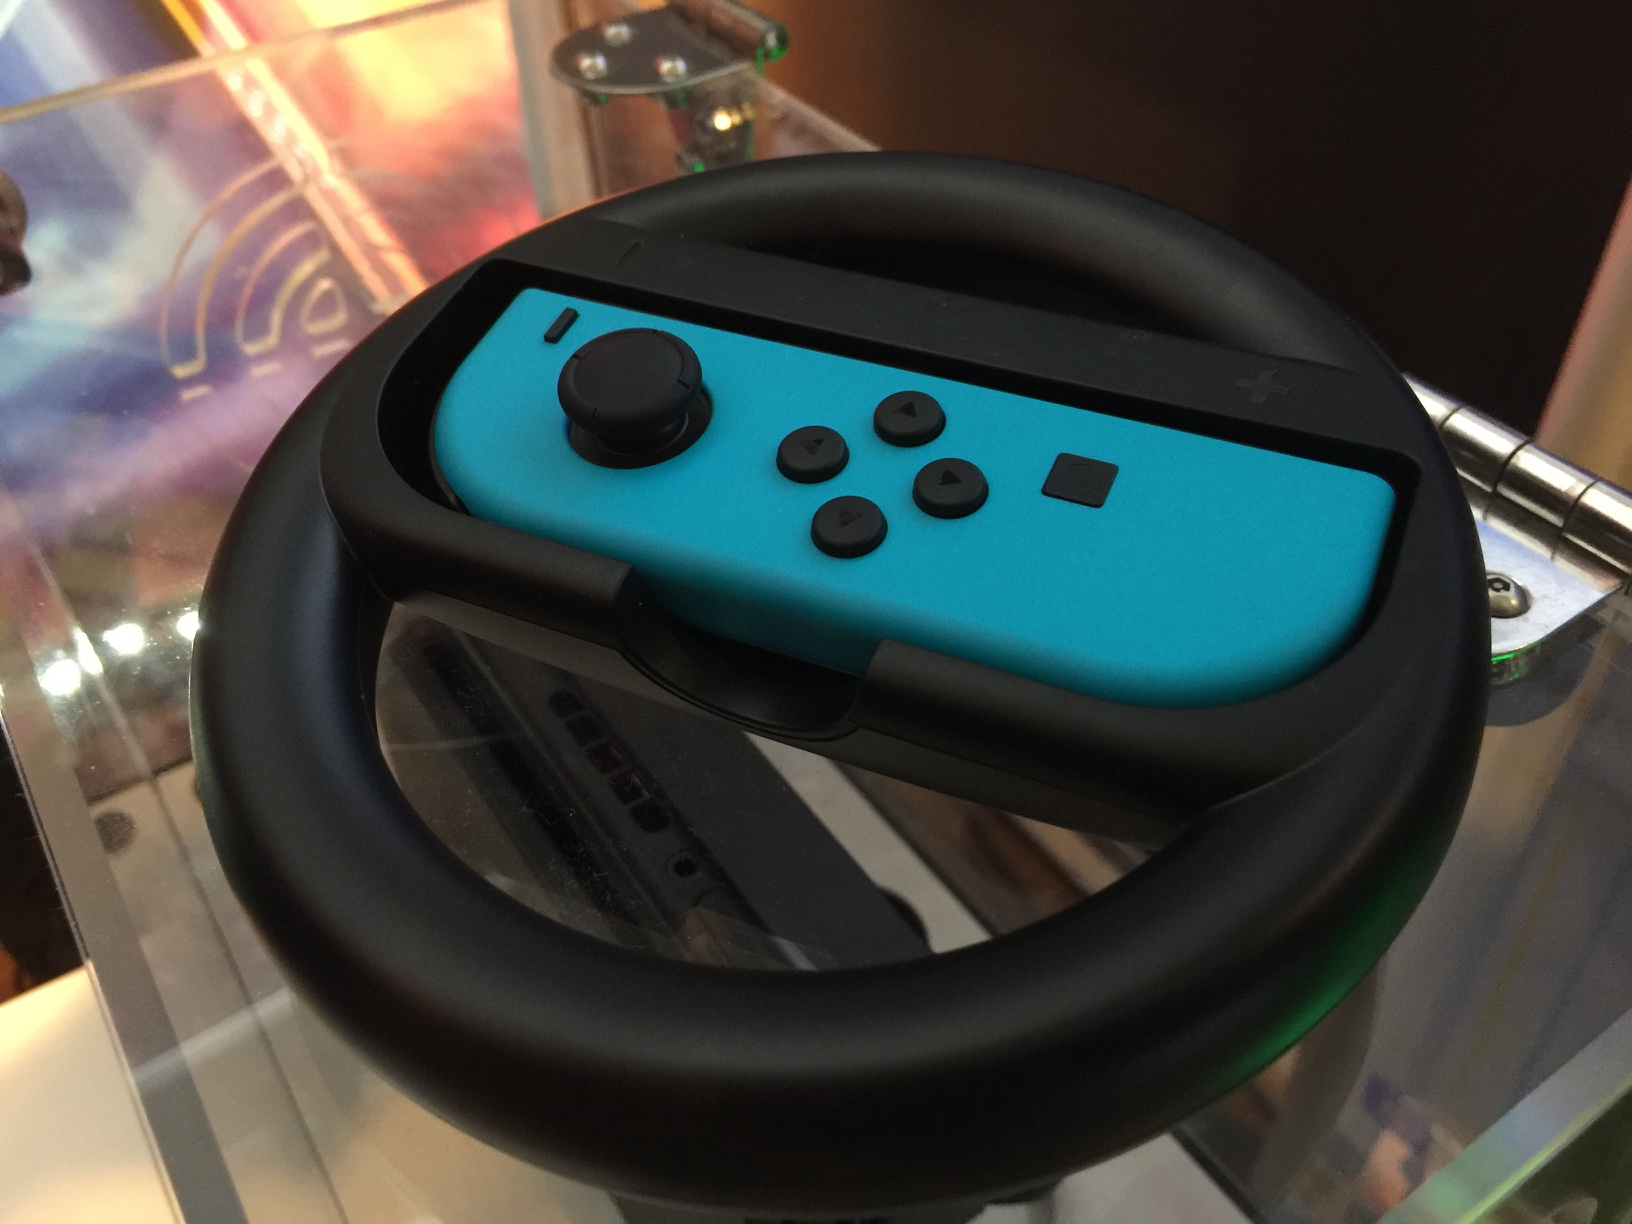 Steering Wheel Accessory Coming To Switch Used For Mario Kart 8